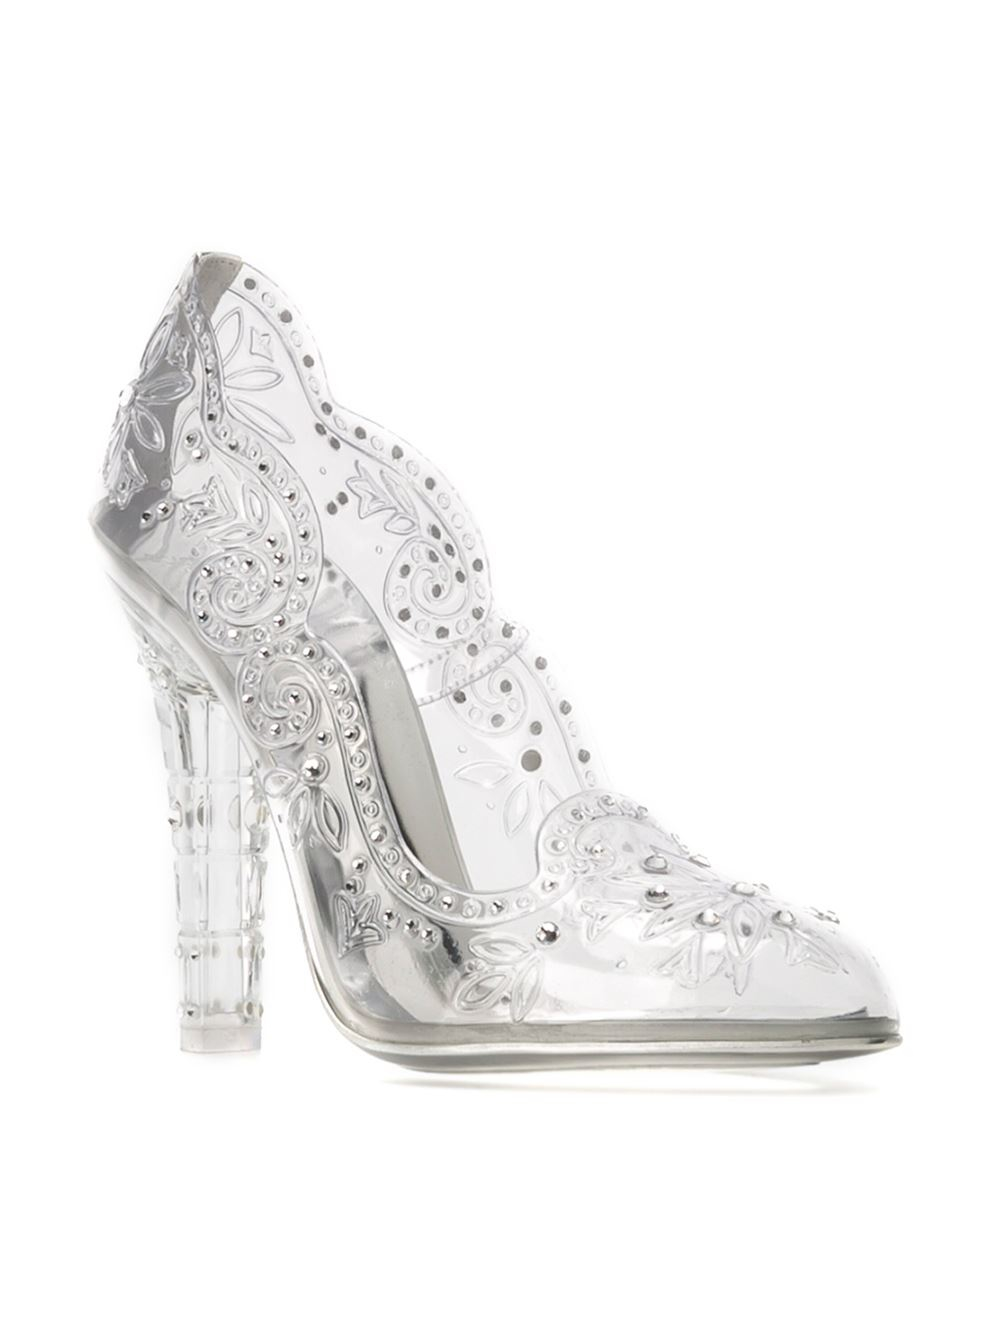 0582a077931 Dolce & Gabbana White Embellished Clear Pumps